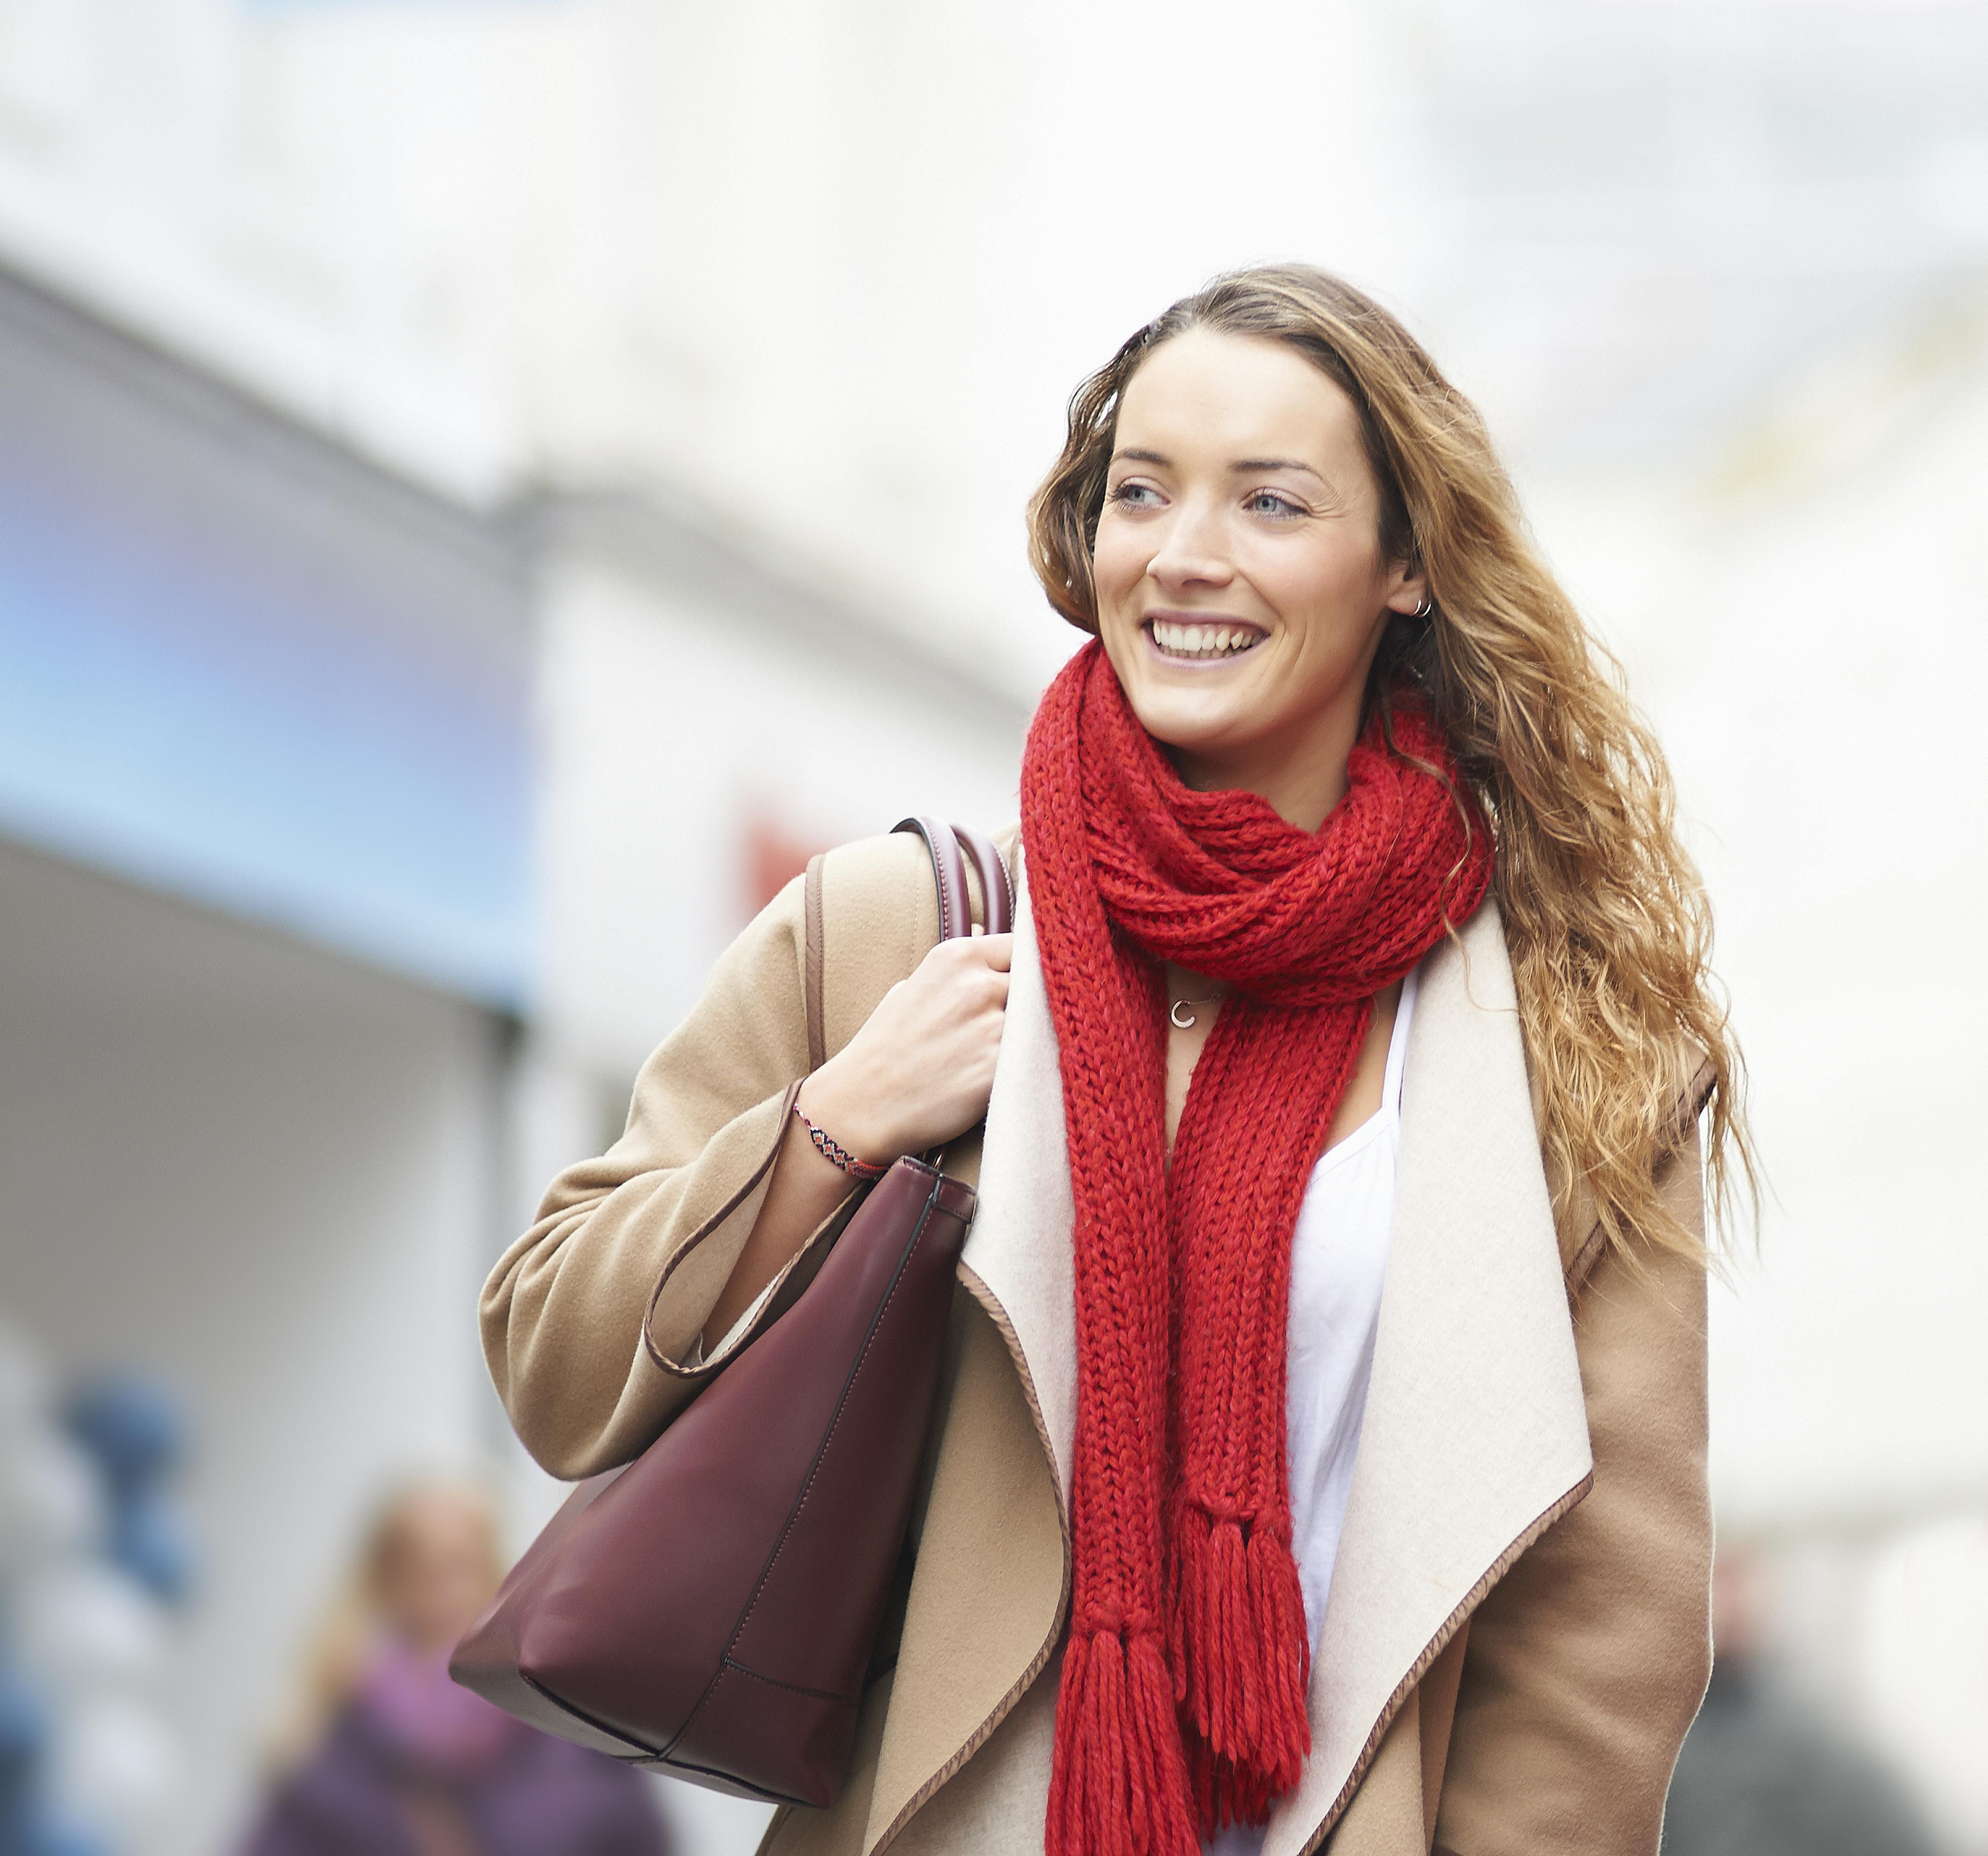 How to wear a rectangle scarf